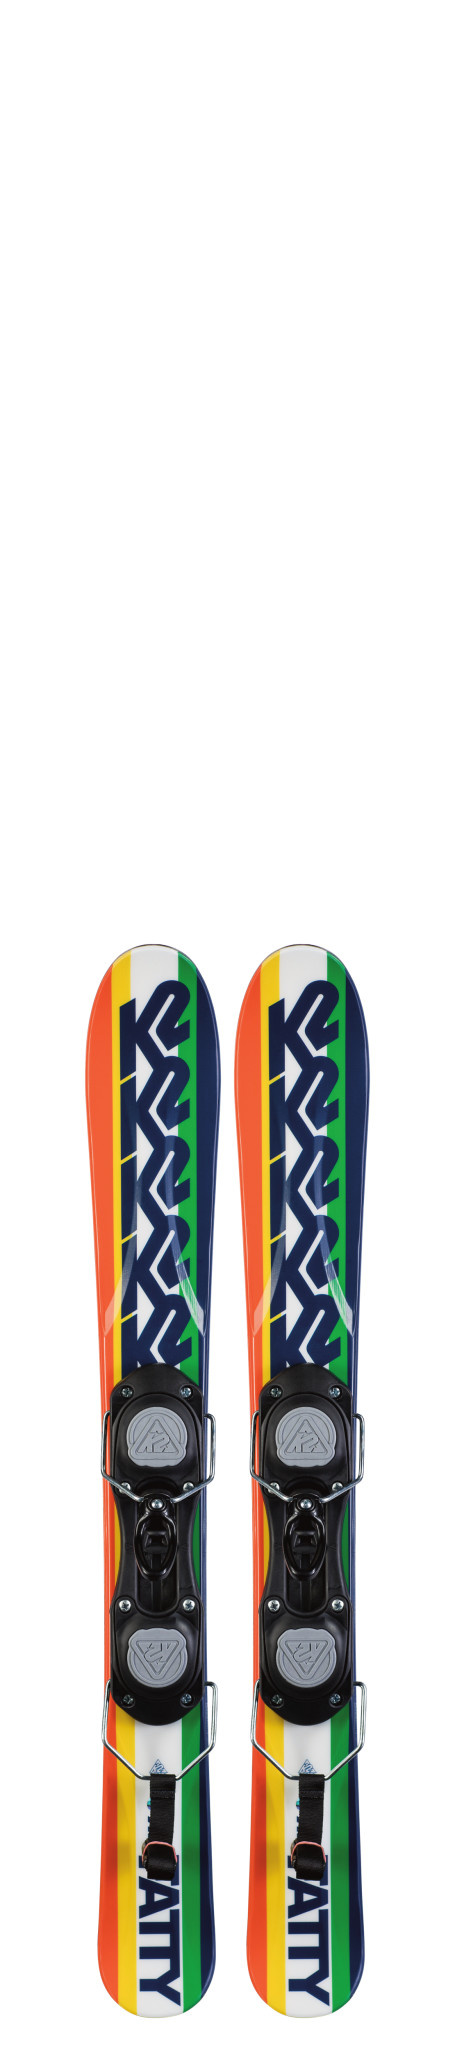 K2 K2 Men's Fatty Ski (2021)